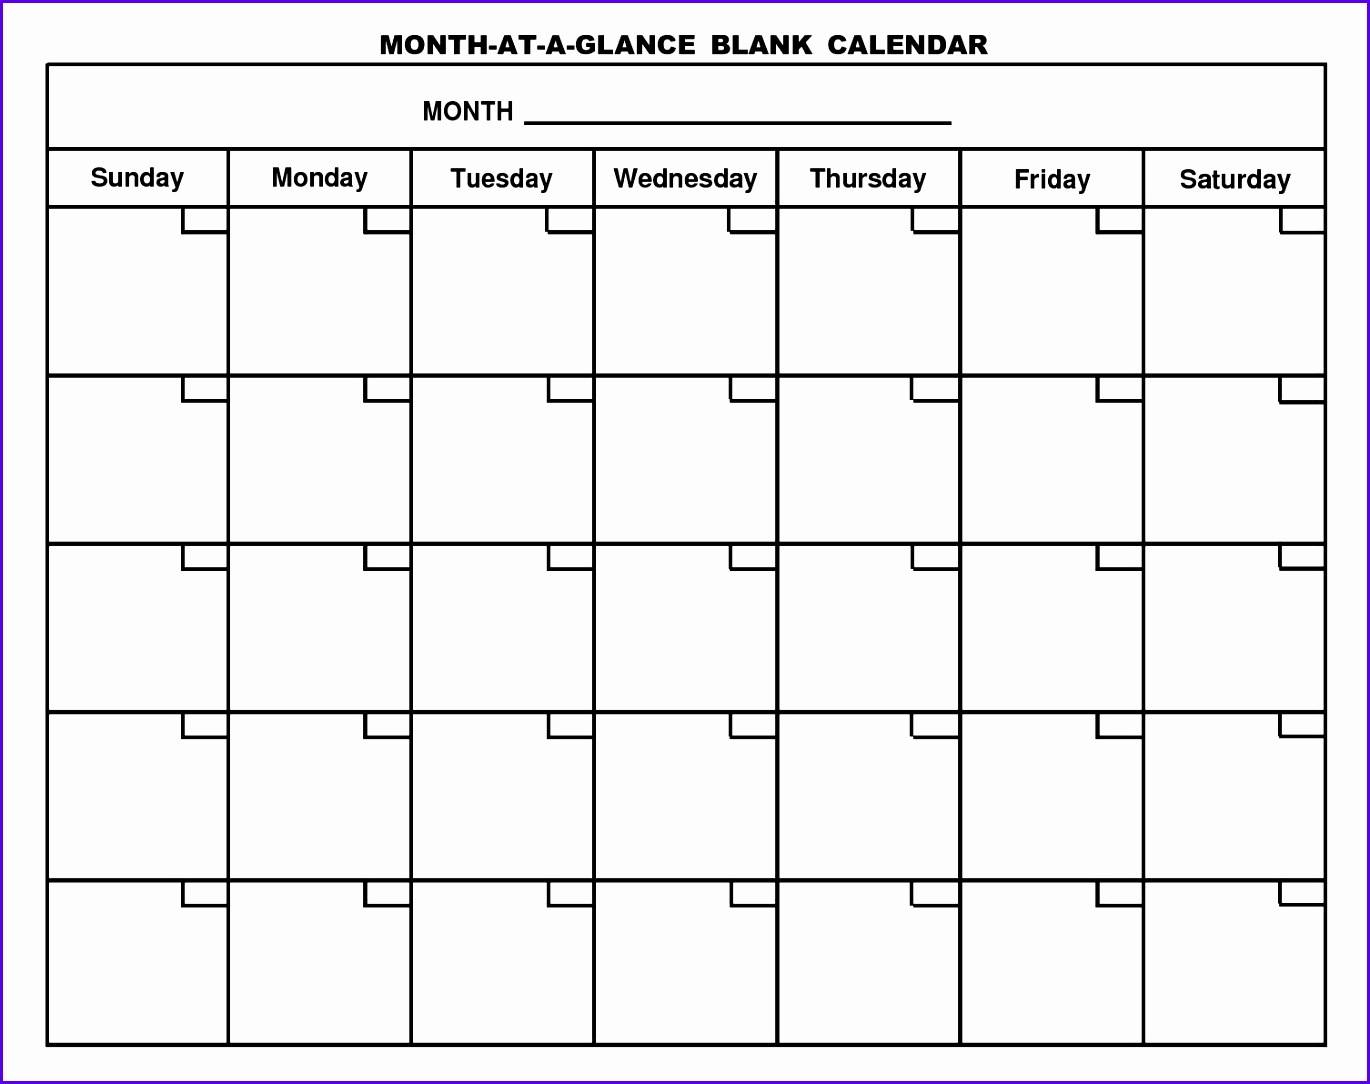 Example Excel Blank Calendar Template A4oei Unique Printable Monthly Calendar Templates Twentyeandi 15061179